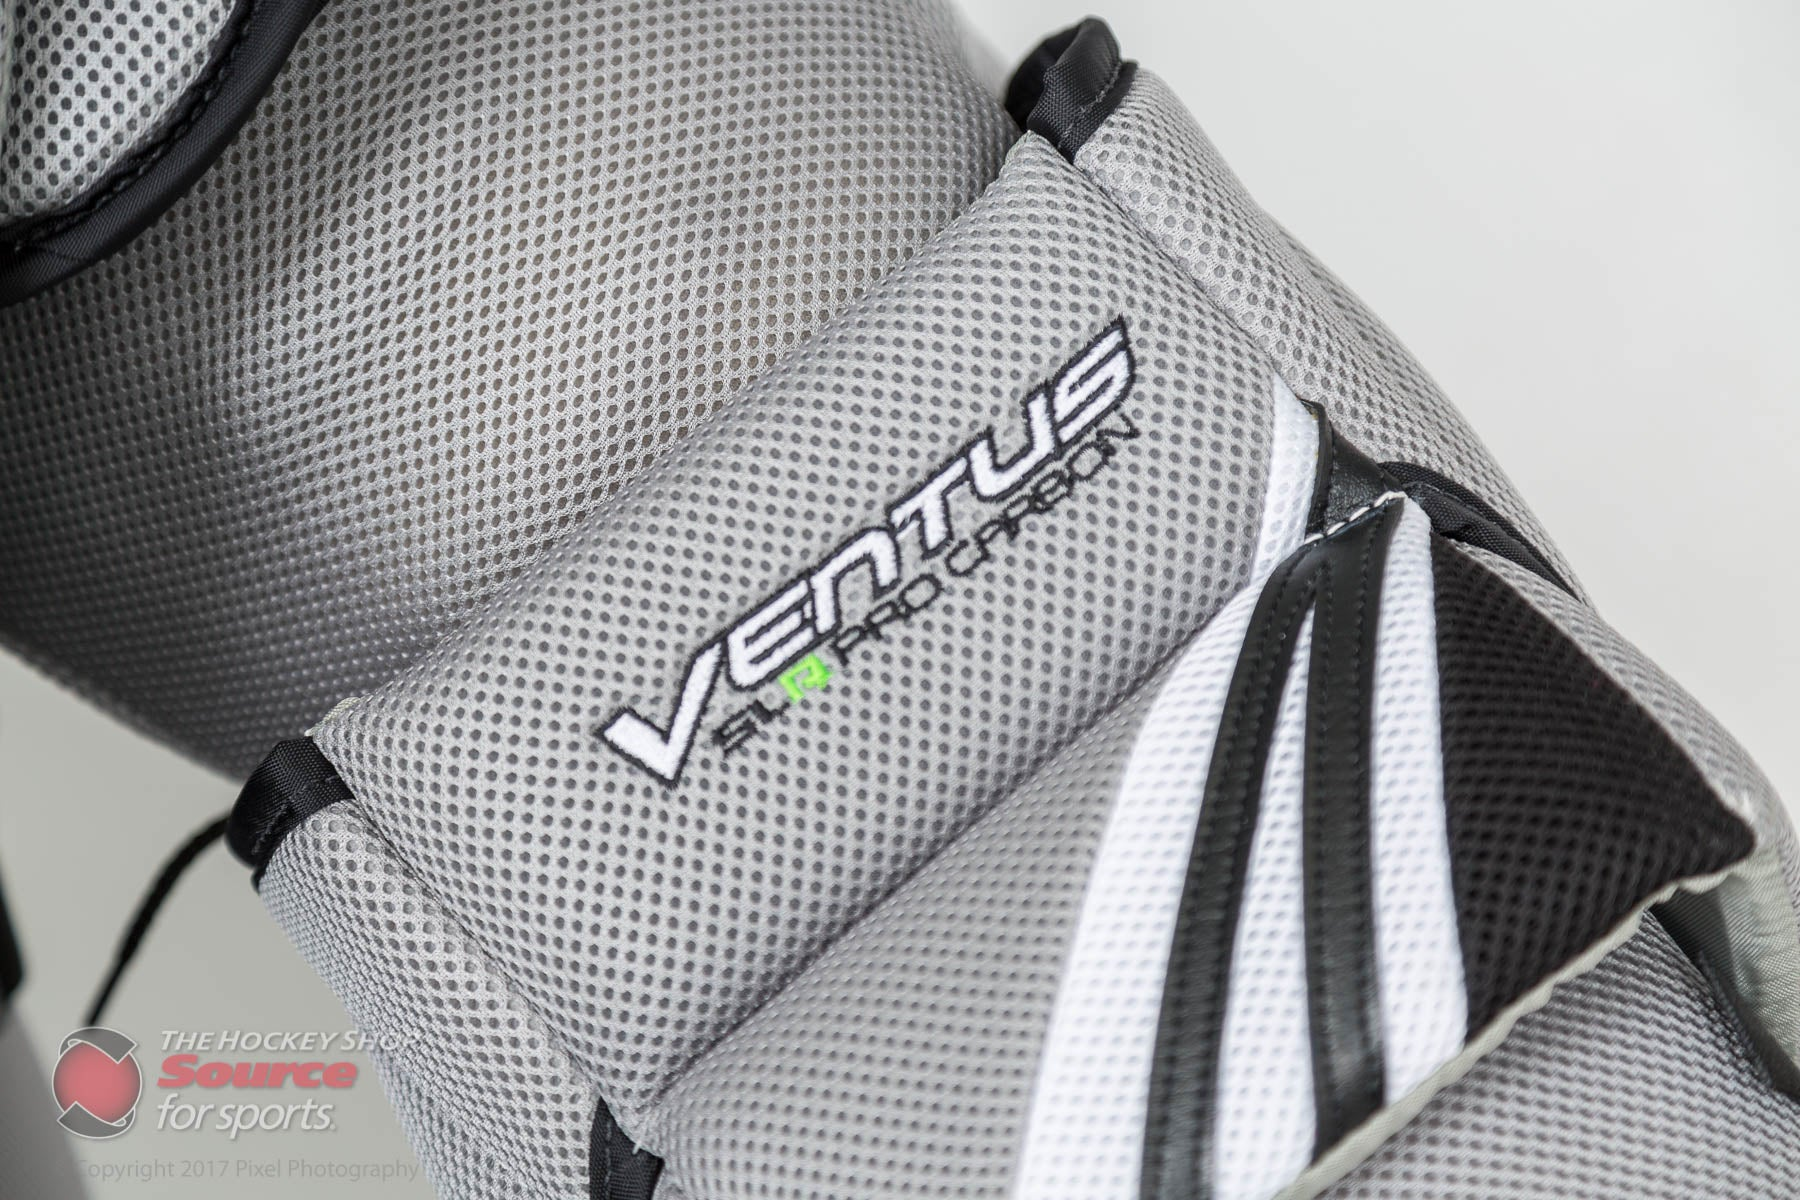 https://cdn.shopify.com/s/files/1/0020/1585/4658/files/THS-Vaughn-Ventus-chest-17-0238.jpg?8236030931121589751